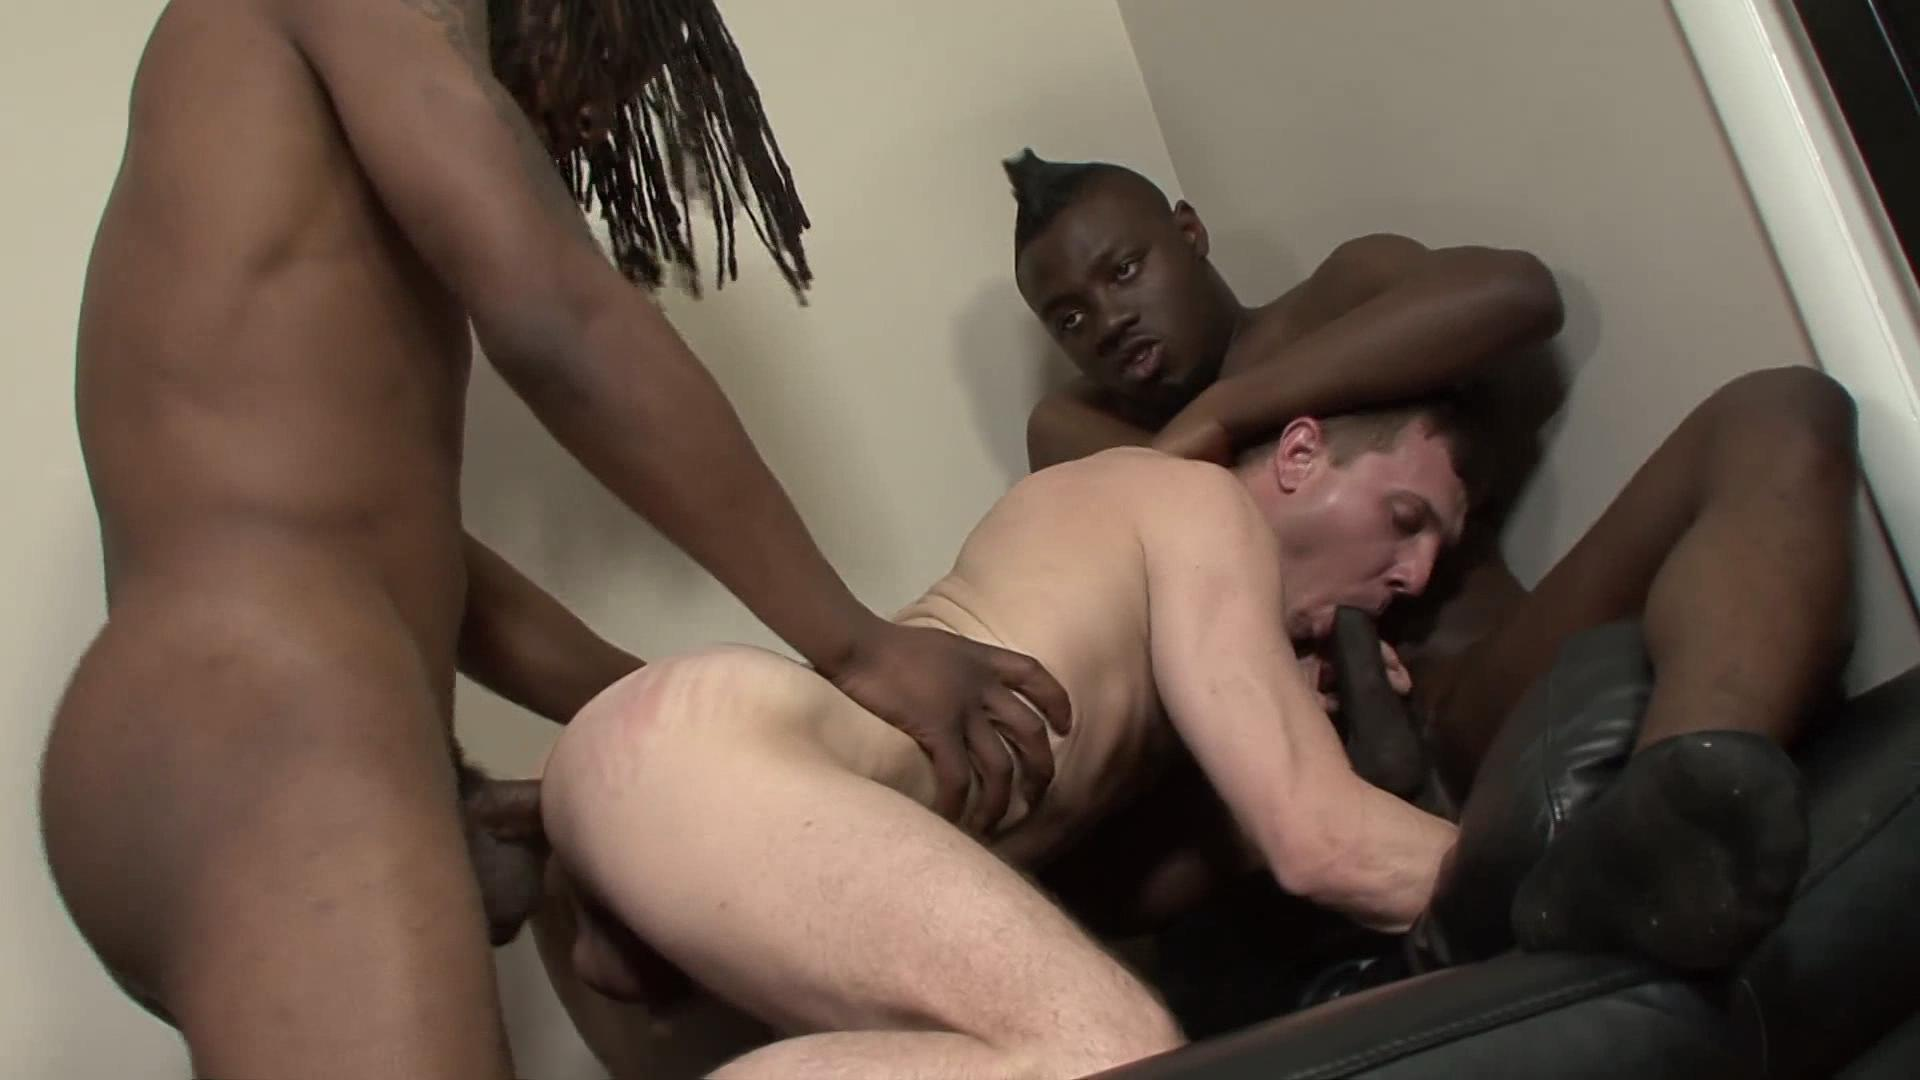 Interracial anal gay